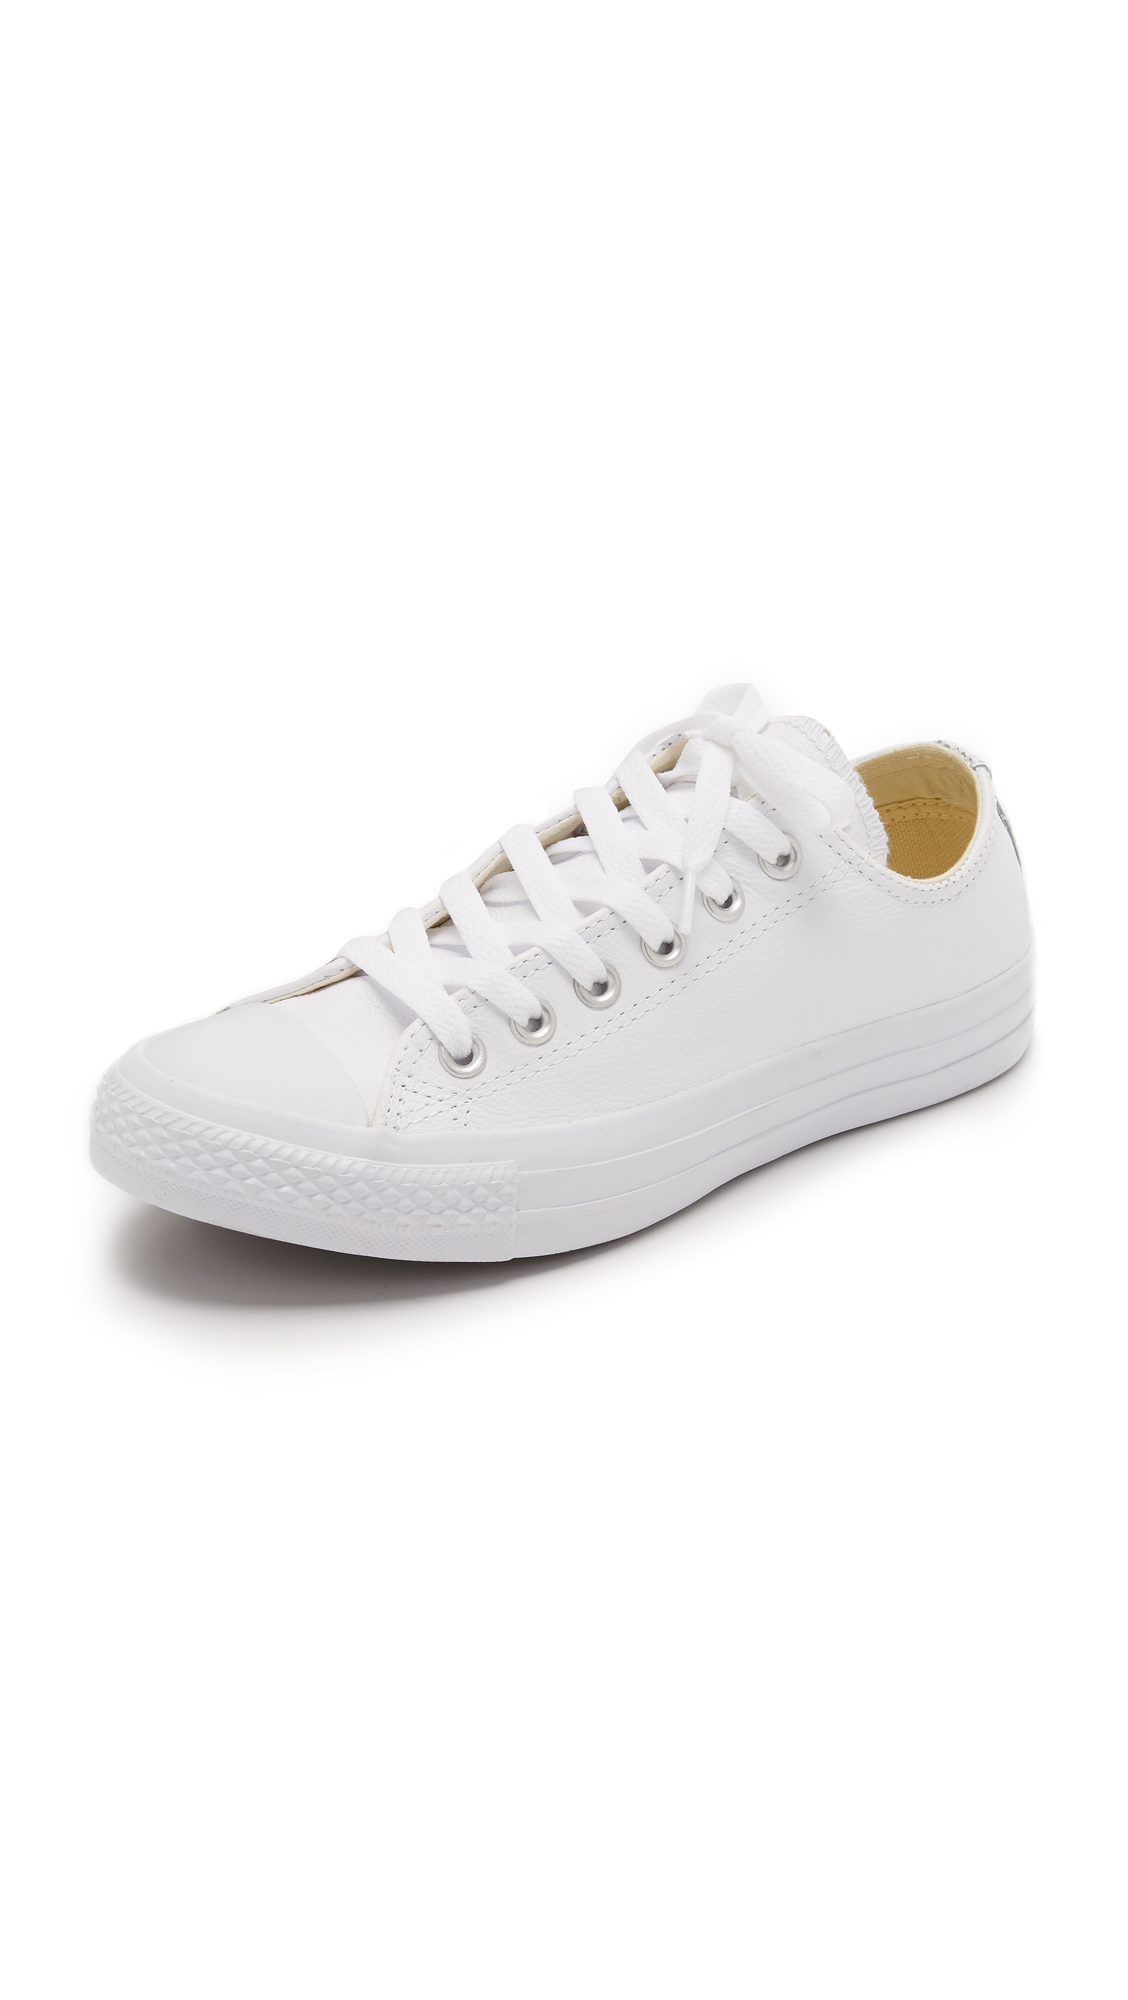 Converse All Star Low-Top Leather Trainers In White Monochrome ... f7b21dd9e2